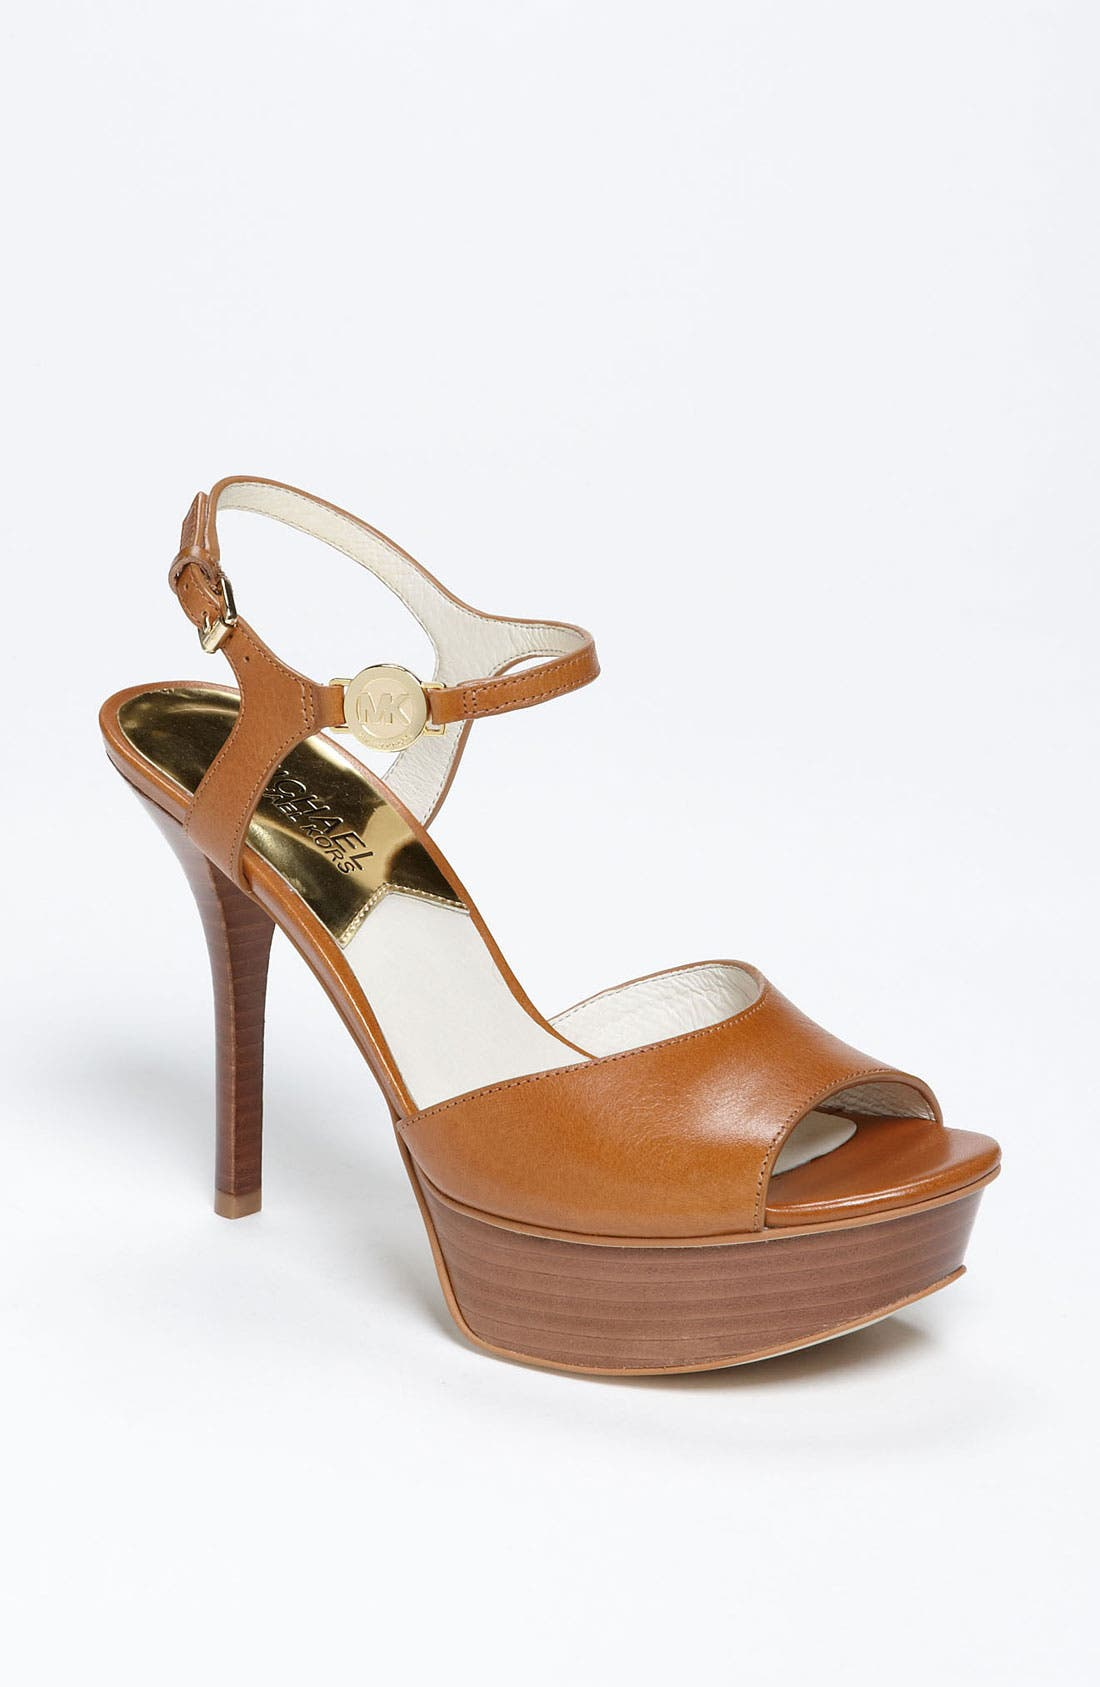 Alternate Image 1 Selected - MICHAEL Michael Kors 'Brayson' Sandal